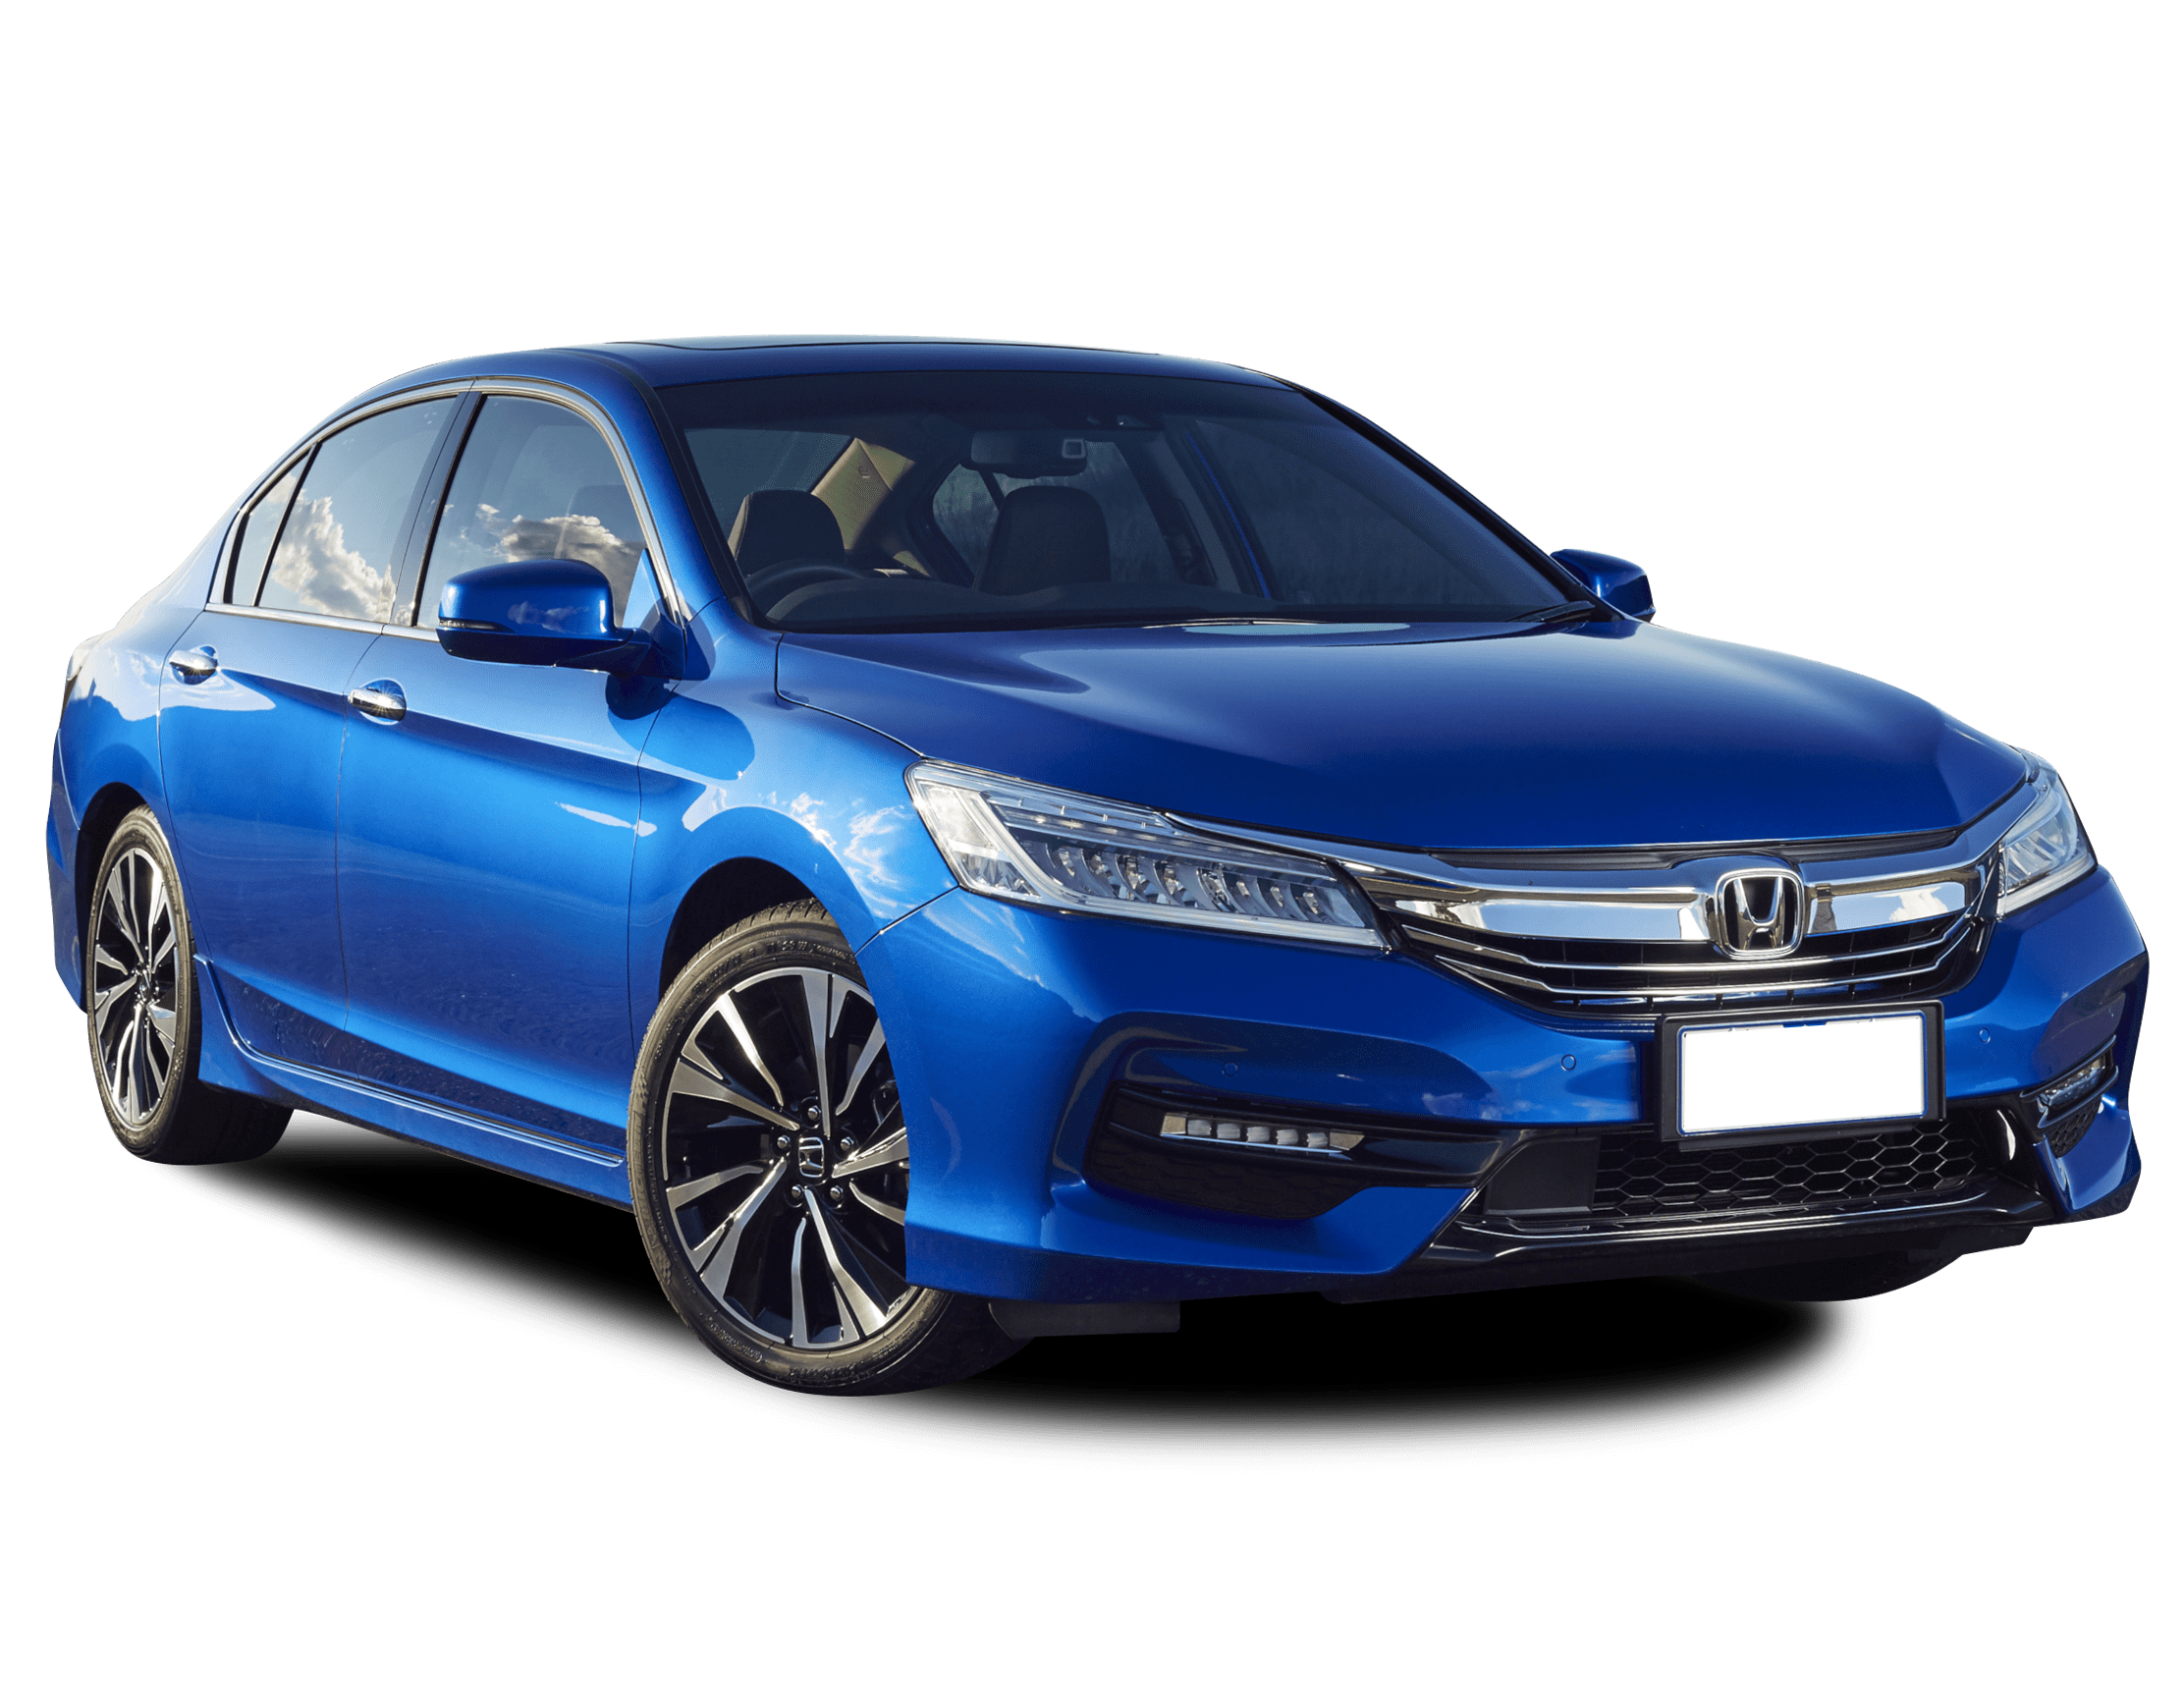 Honda Accord: Driving Safely With a Trailer